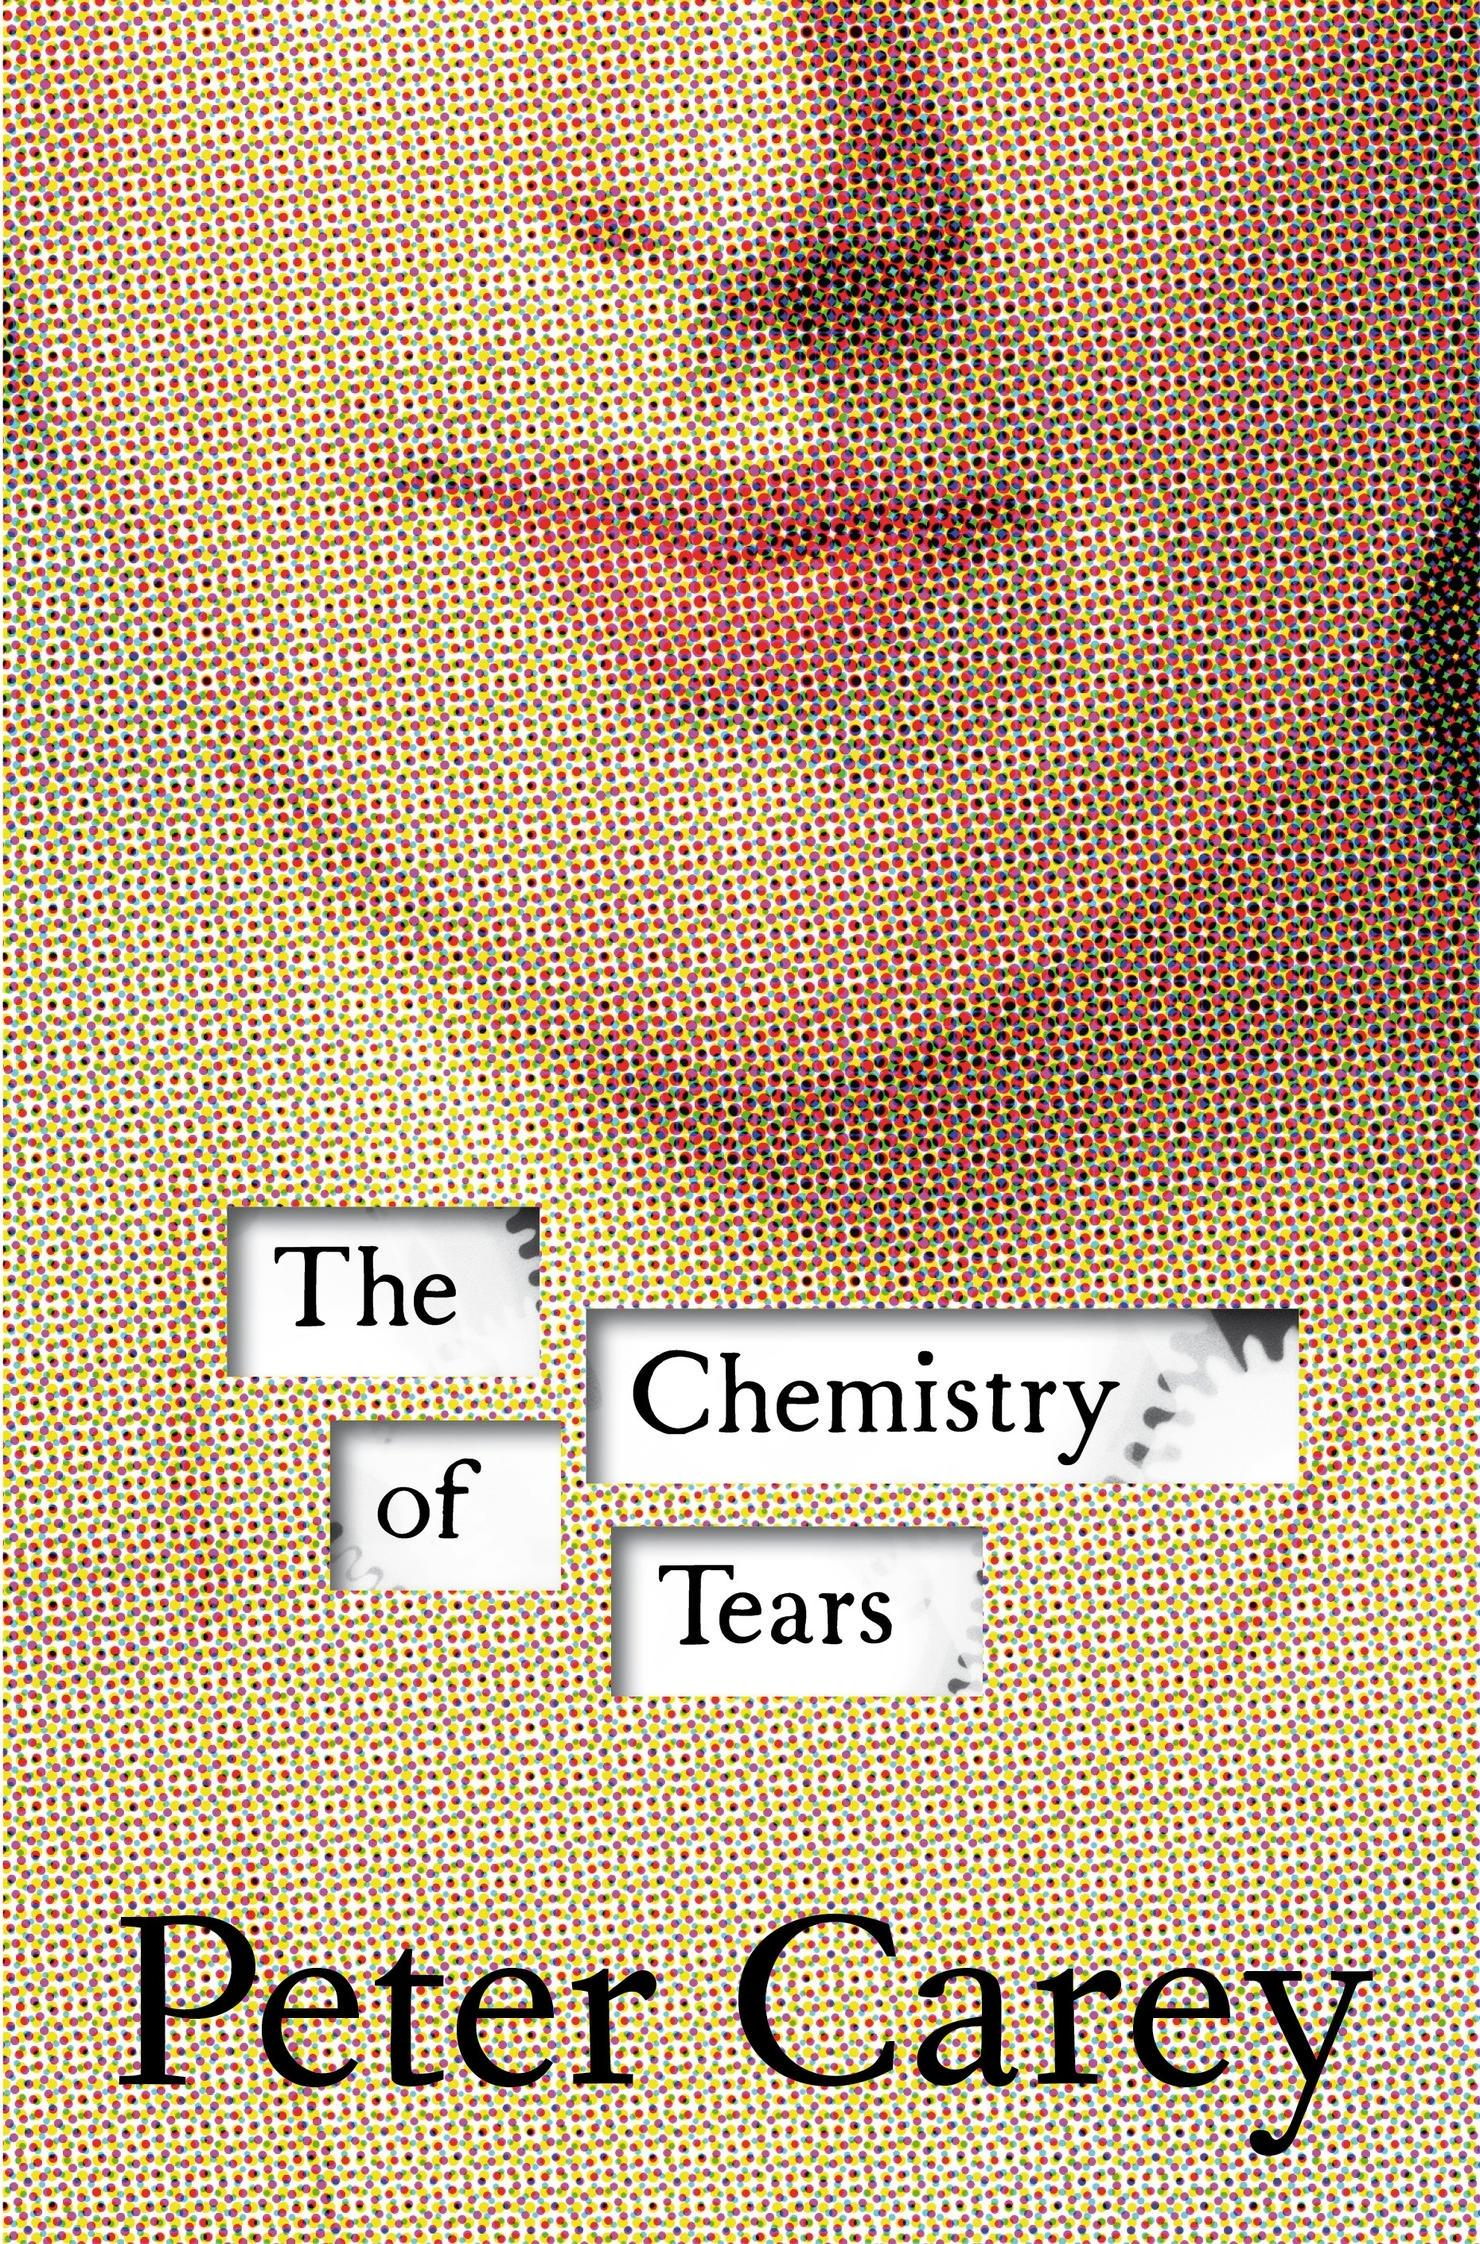 The ChemistryofTears